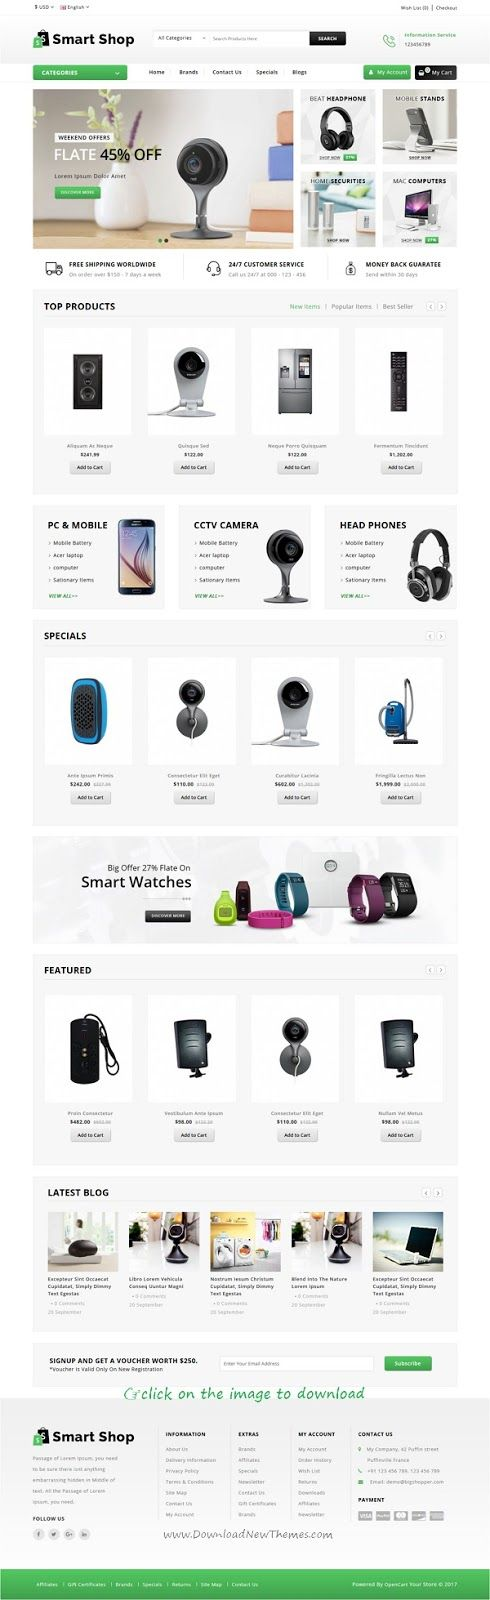 Top 10 Best New Premium eCommerce Themes: Smart #Shop is clean and modern design responsive #OpenCart theme for stunning electronics, digital or any multipurpose eCommerce store website. It has 3 different homepage layouts, product tab with slider, product image thumb swap, blog module, SEO optimized, cloud zoom, related product scroller and much more features